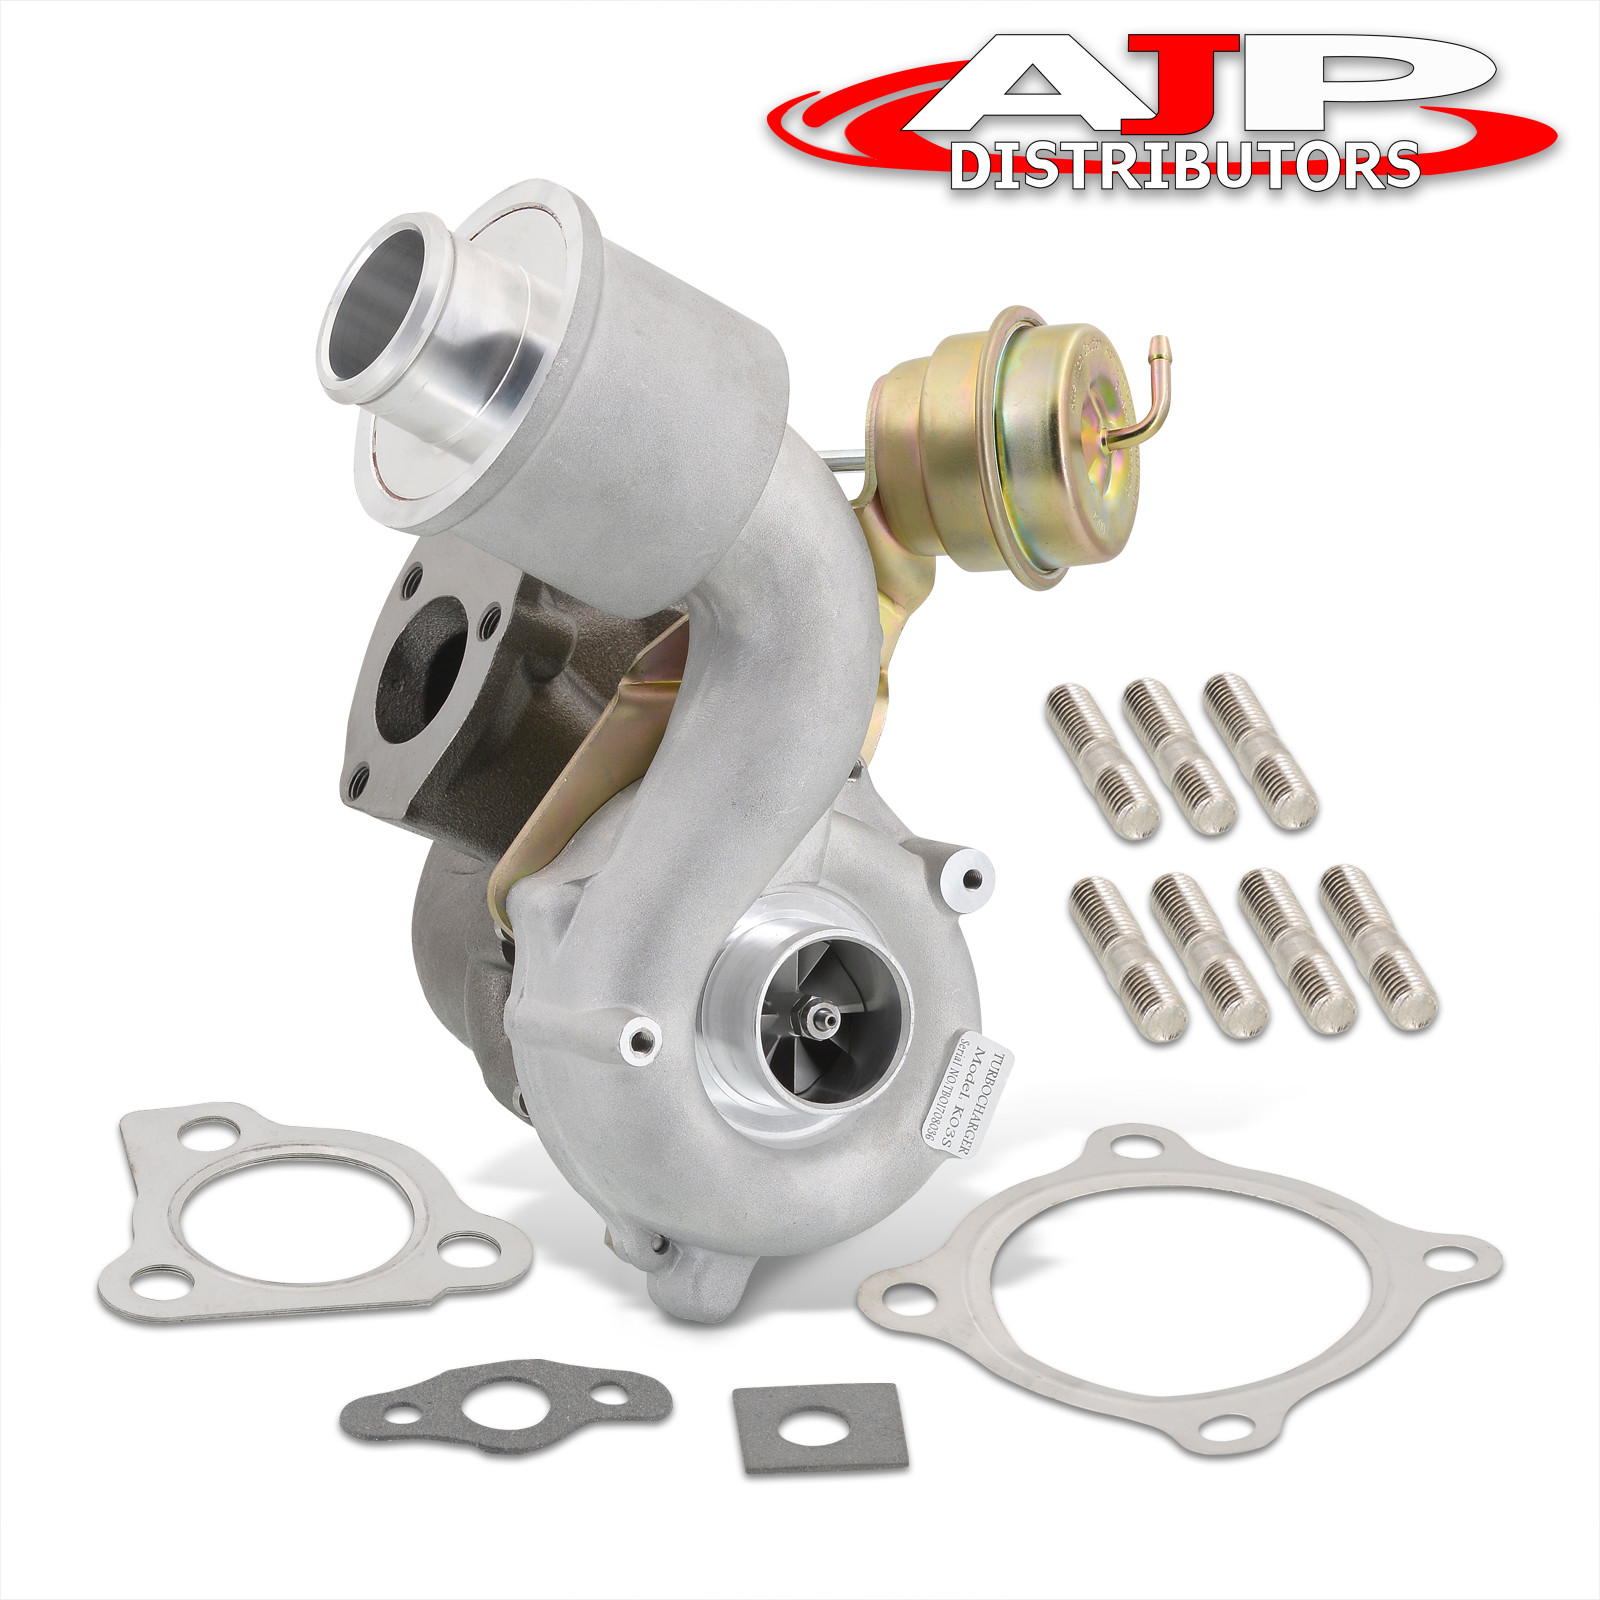 Details about Ko3 Turbocharger Golf Gti Bora Beetle 1 8T K03 Replacement  Turbo Charger